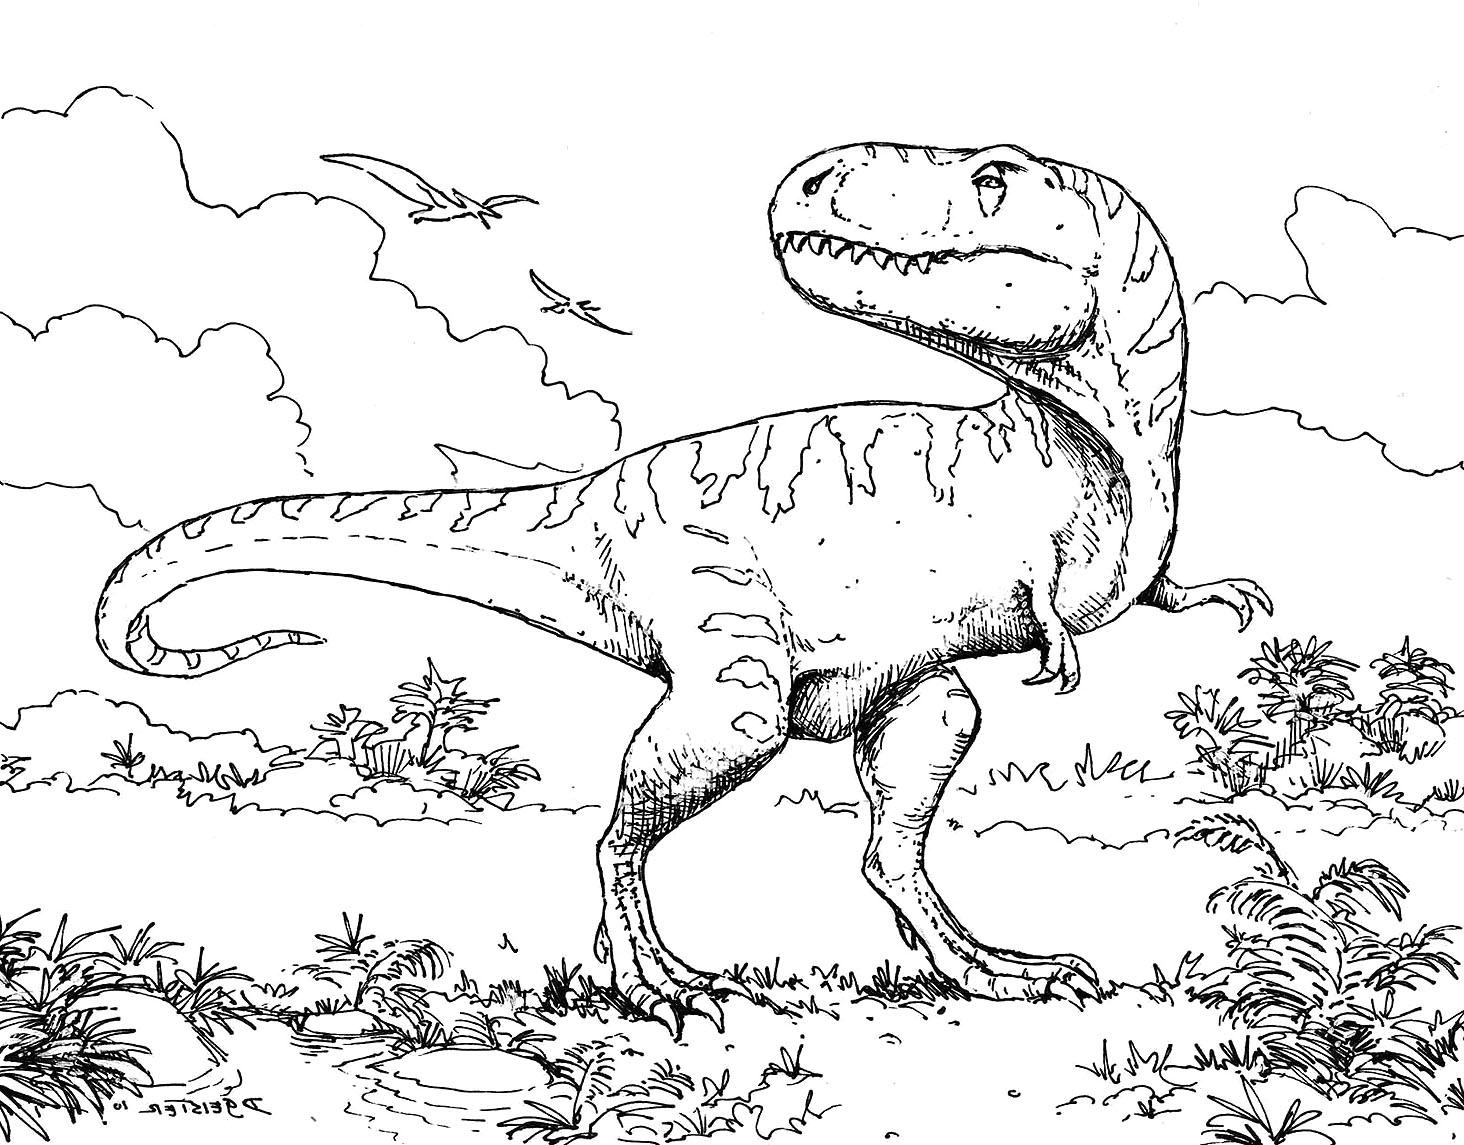 Dinosaur Line Drawing at GetDrawings.com | Free for personal use ...